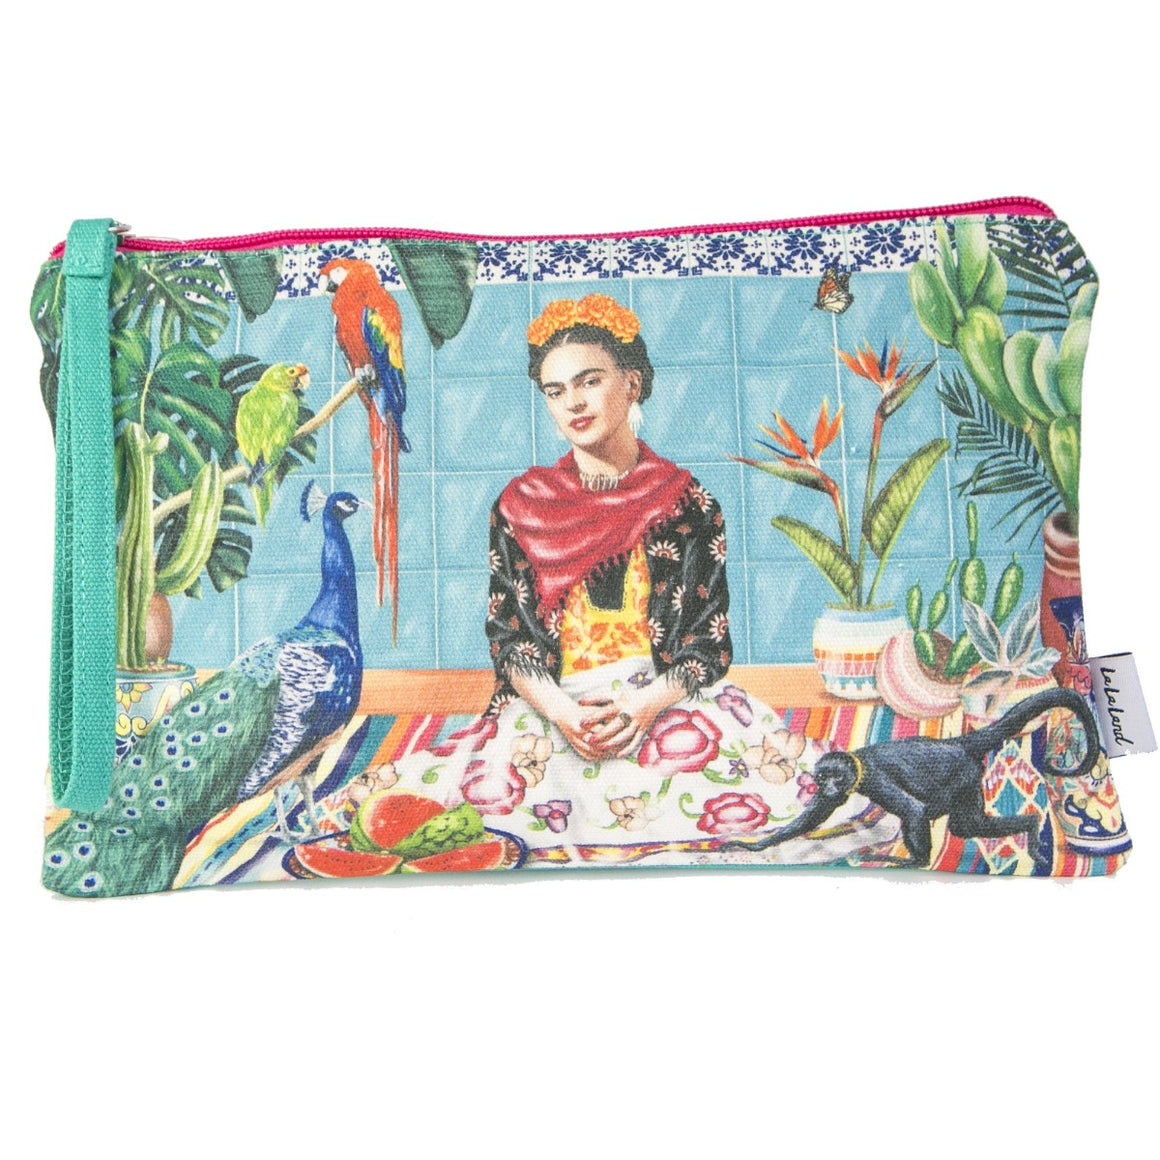 Clutch Purse featuring birds, monkey, floral pattern and frida kahlo